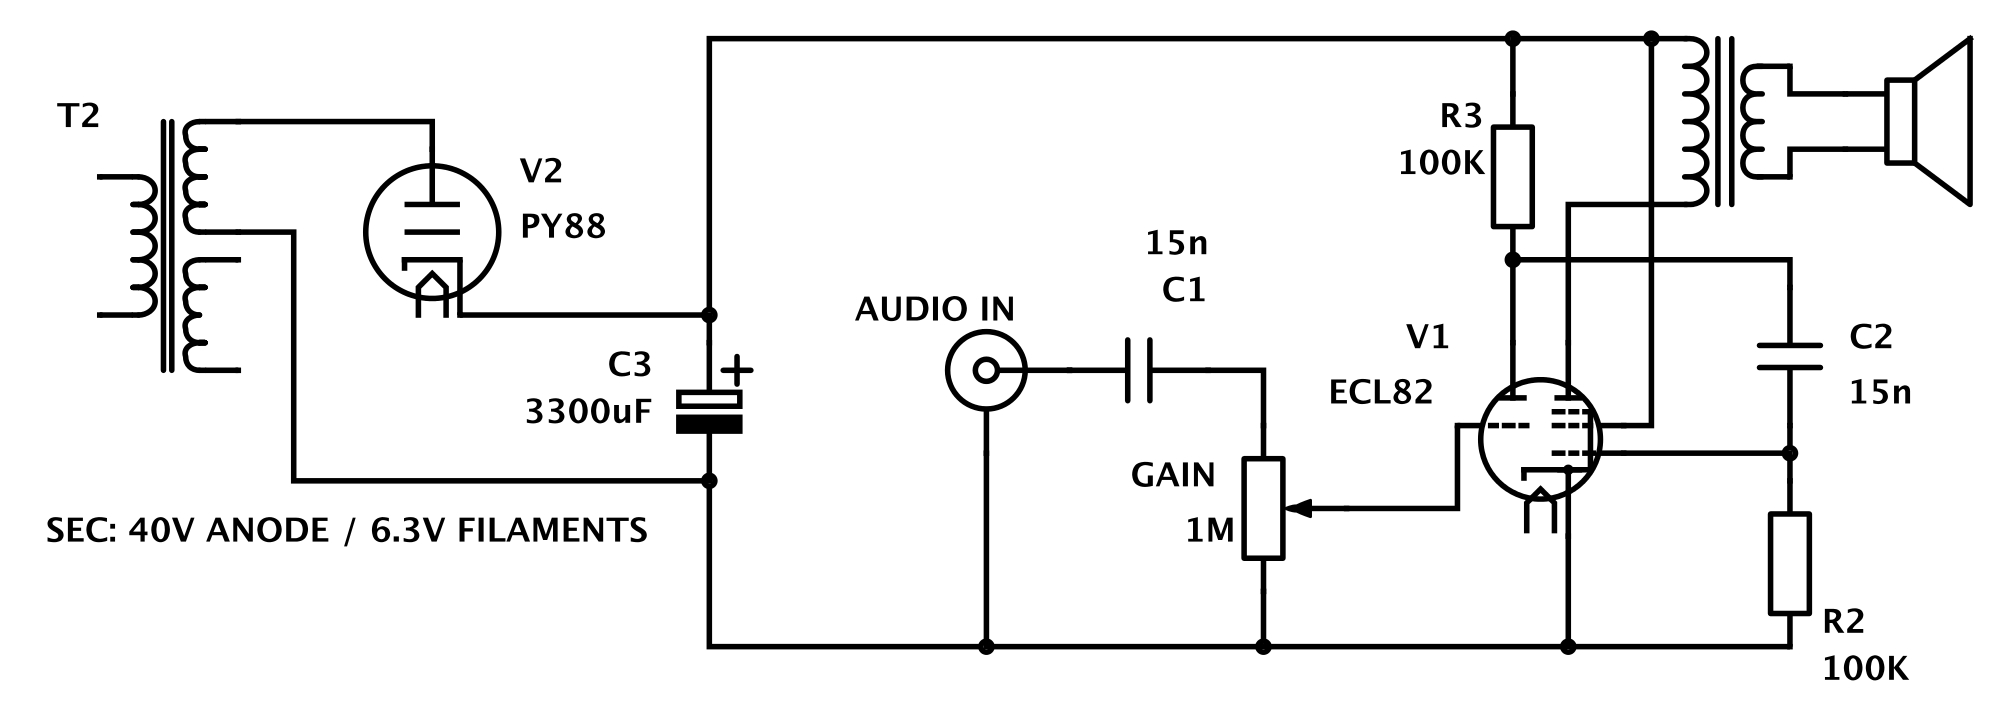 Low Voltage Tube Amp Is Great For Beginners Hackaday Image Audio Amplifier Circuit Board Download Schematic